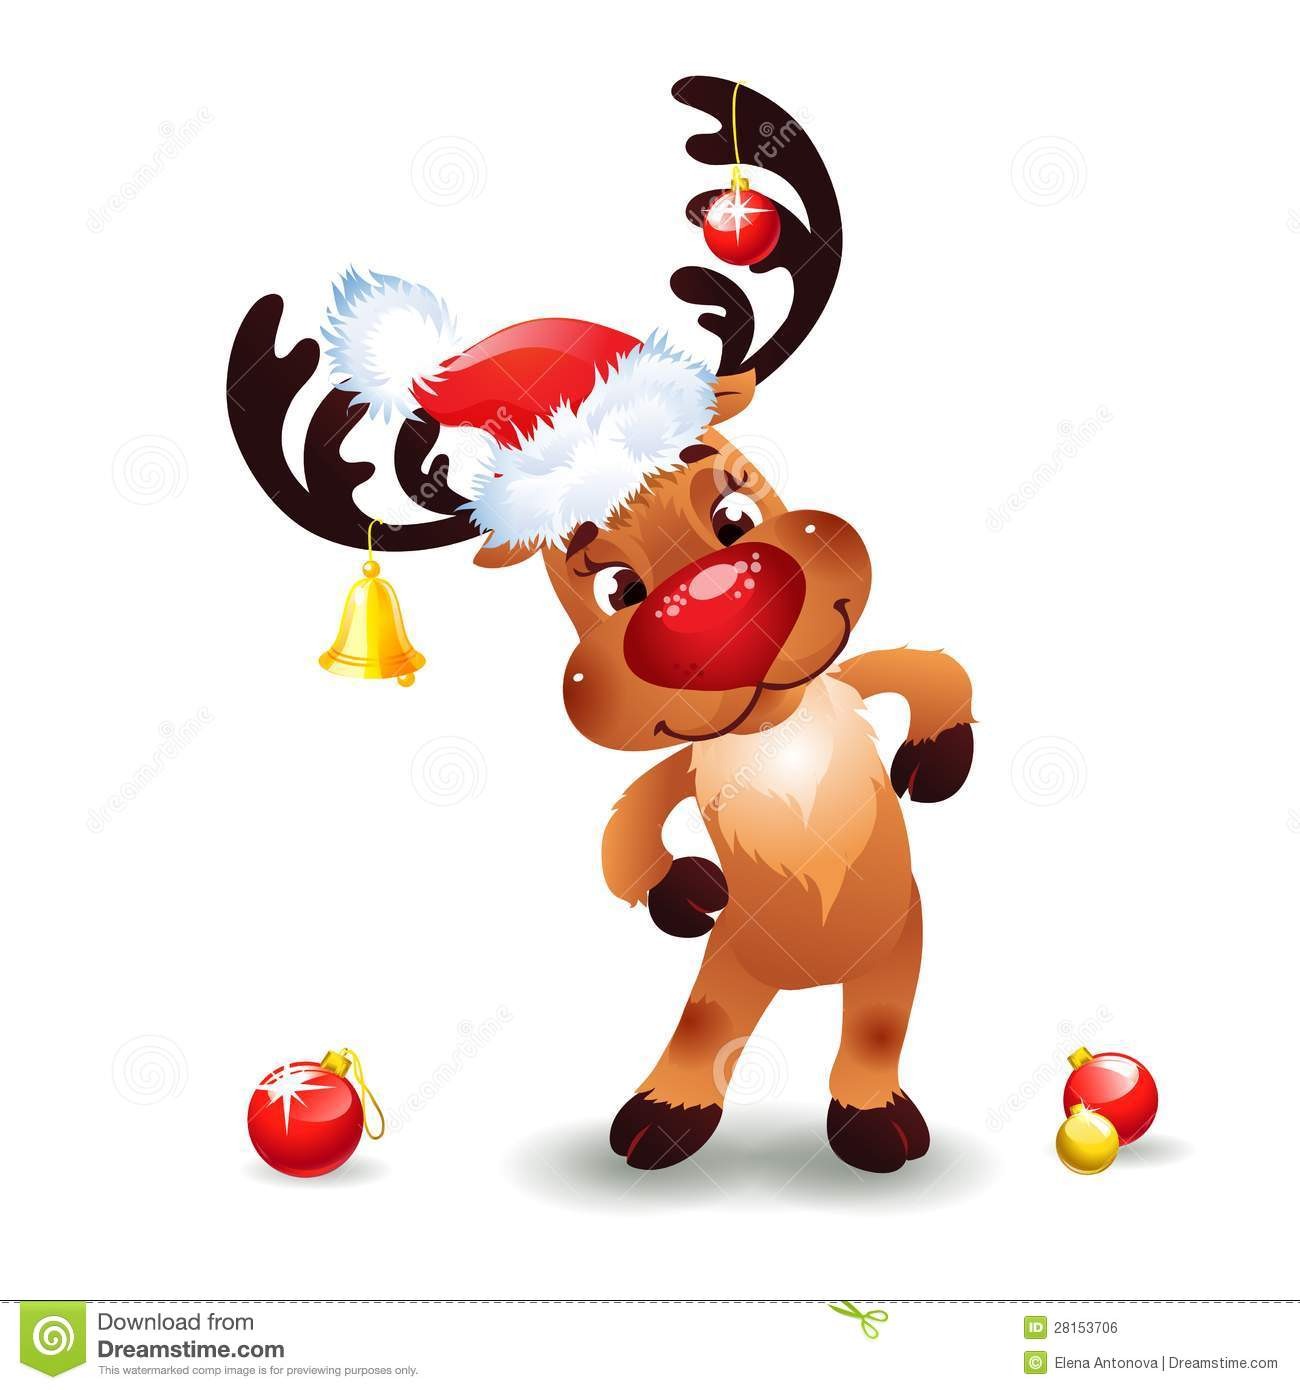 Funny Reindeer Christmas Royalty Free Stock Image   Image  28153706